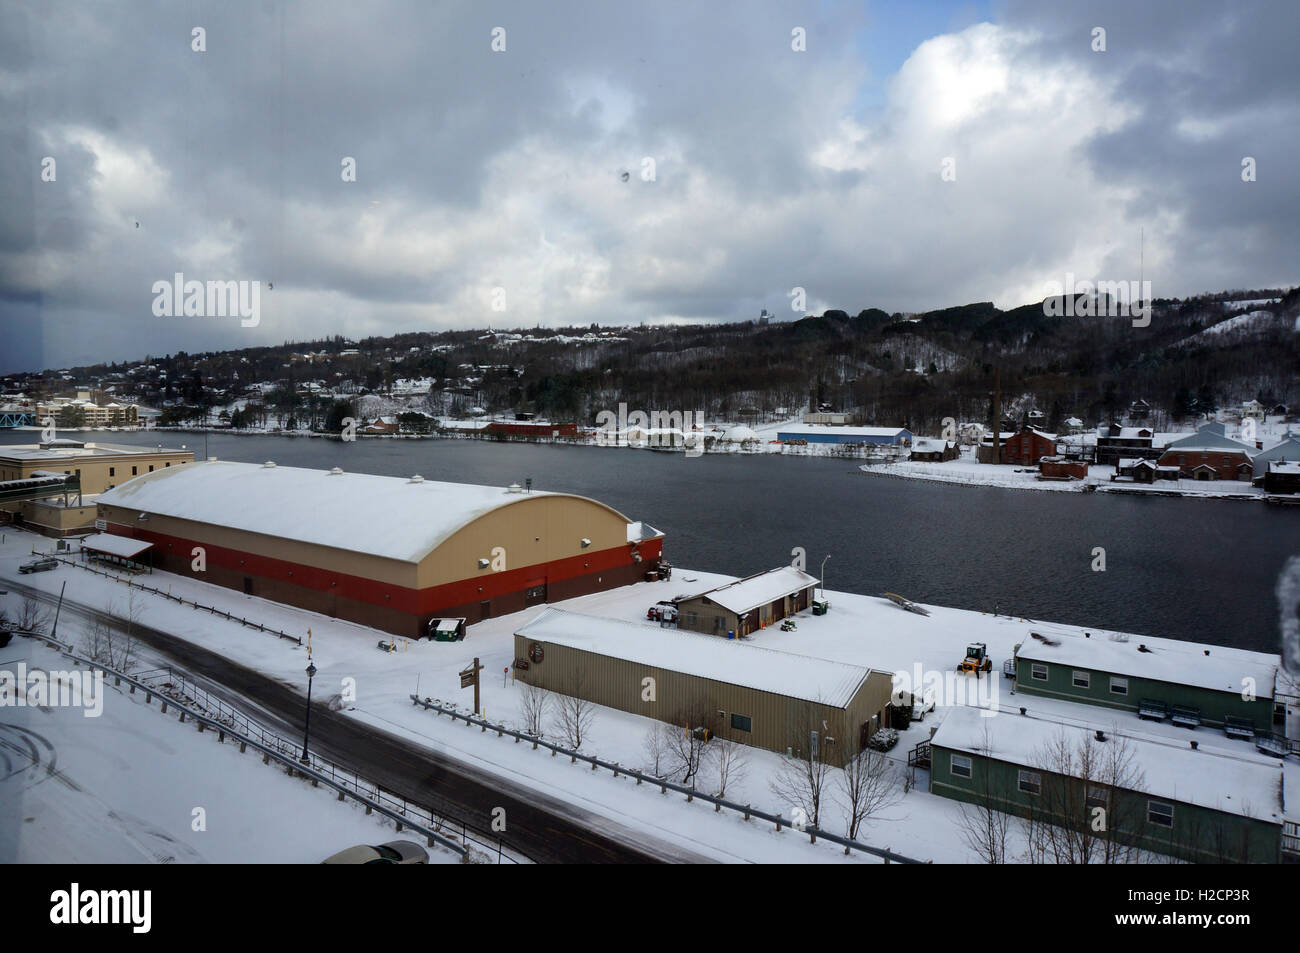 Winter Scene showing a view of Portage Lake in the Winter time - Stock Image